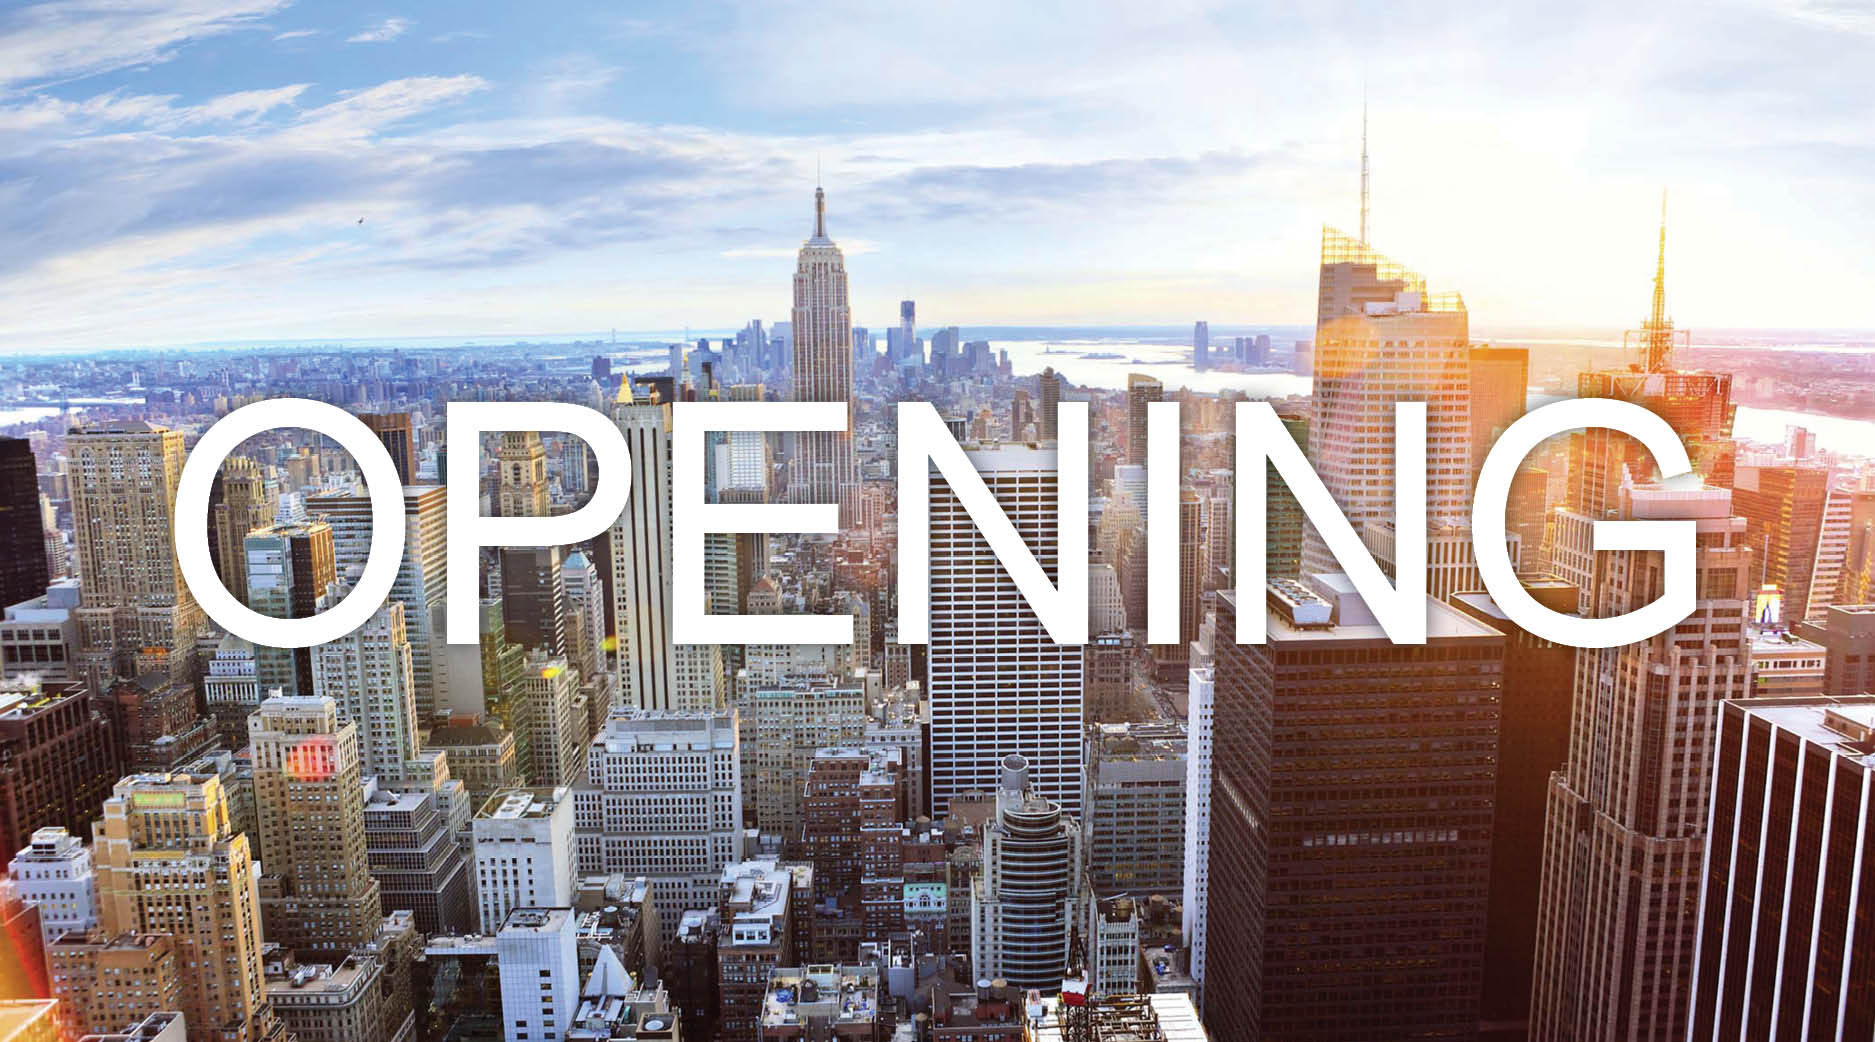 Reverie to open Innovation Center in N.Y.